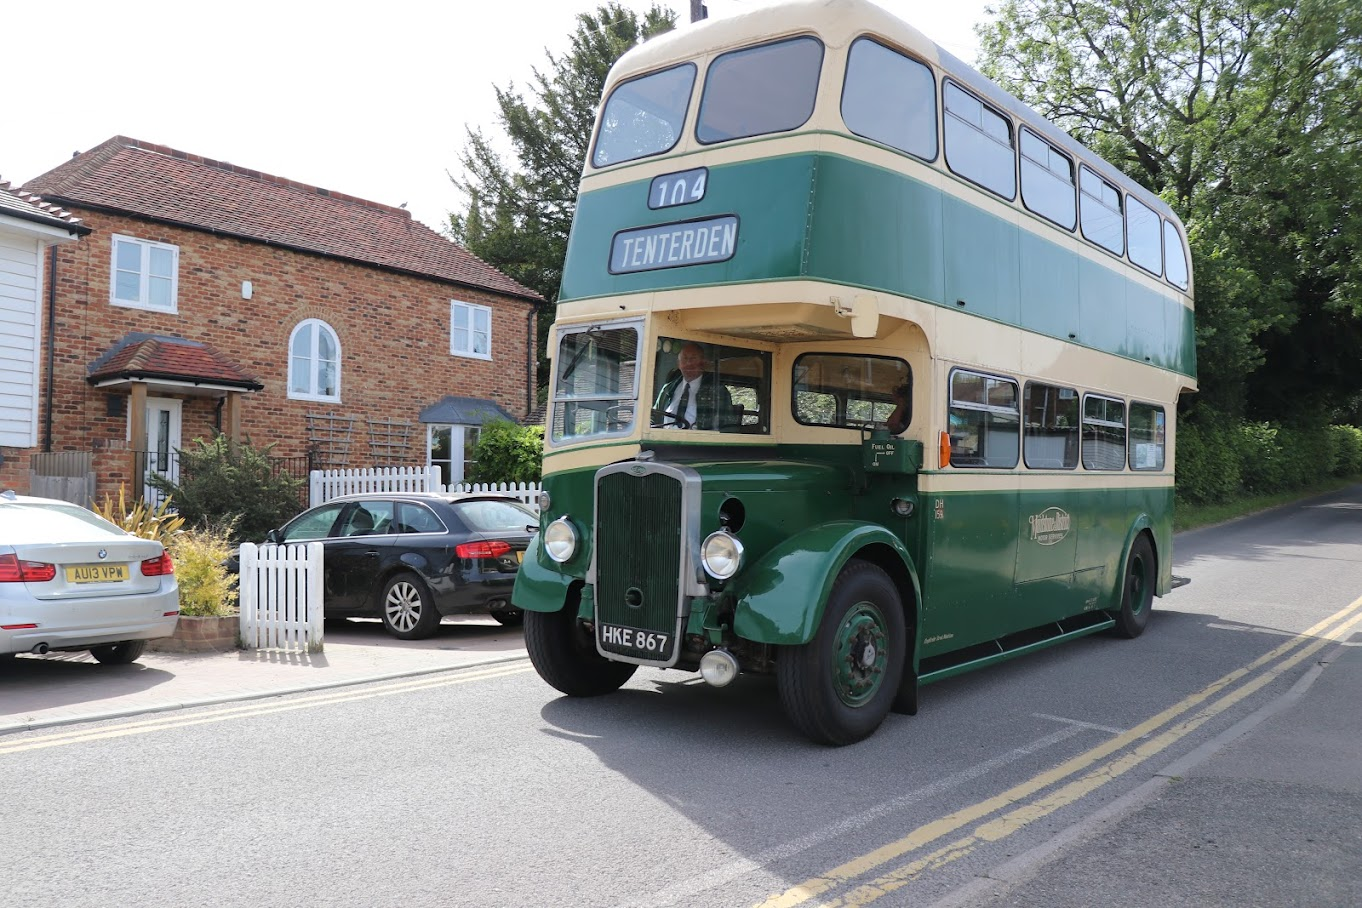 Tenterden Bus Rally 2018 Tenterden Town Station